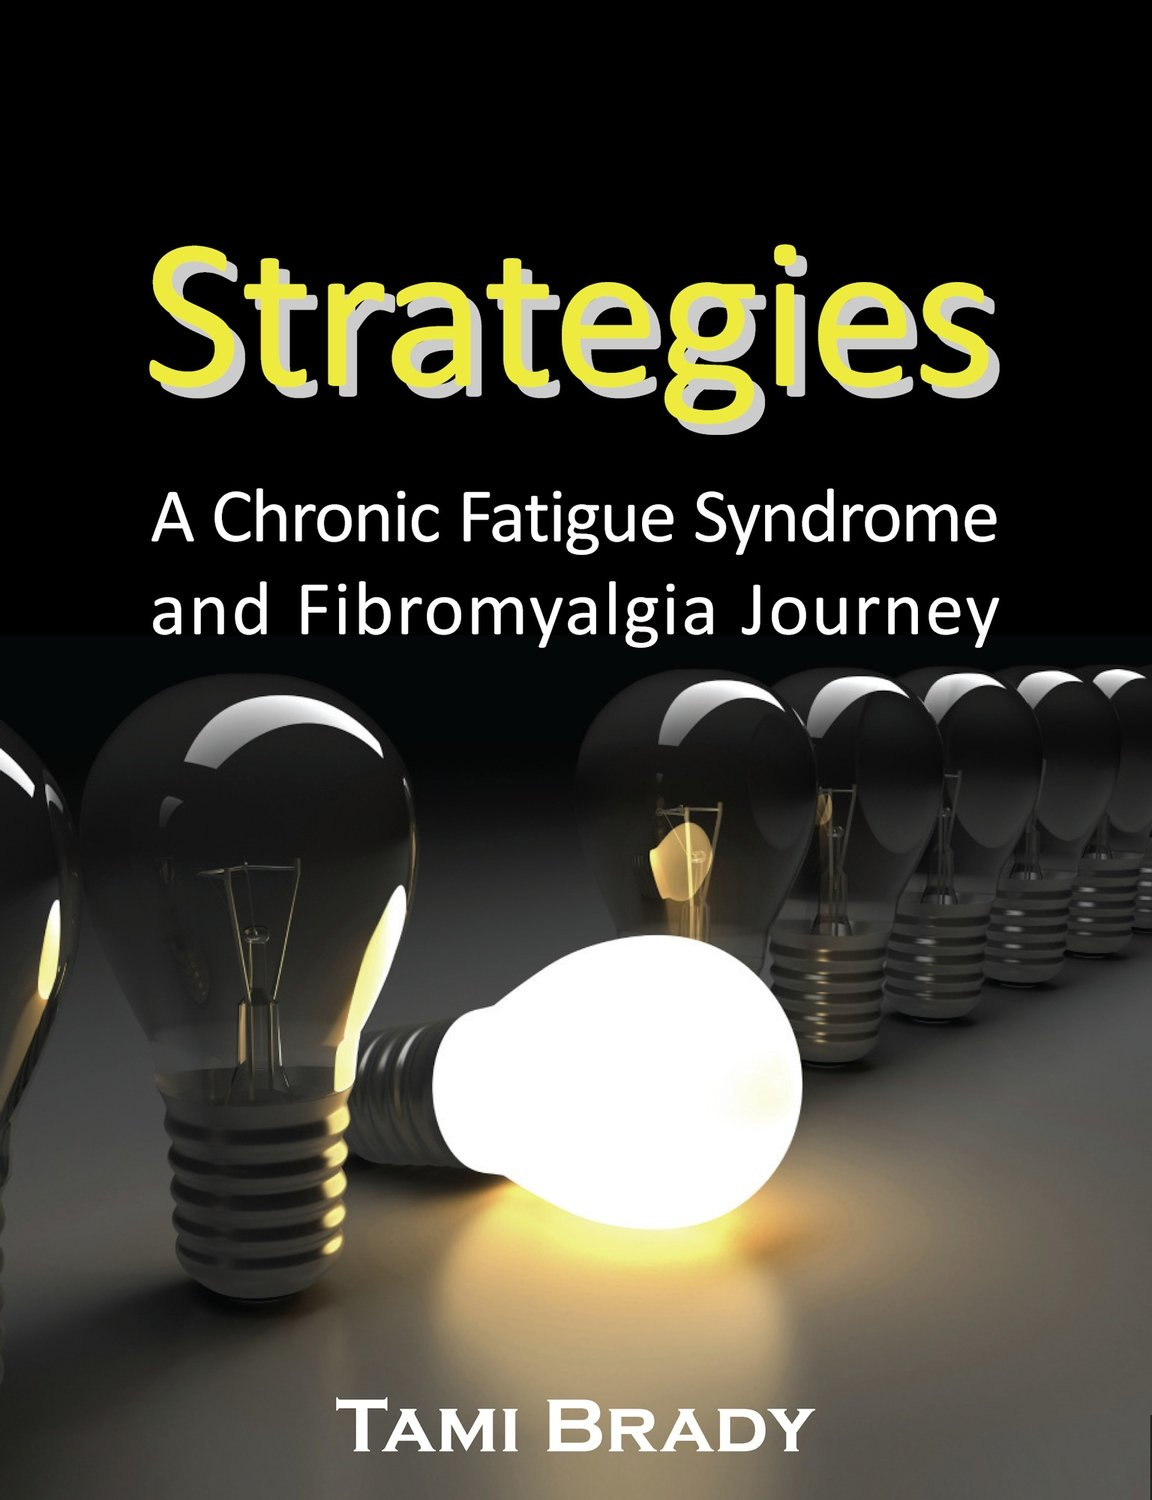 Strategies: A Chronic Fatigue Syndrome and Fibromyalgia Journey